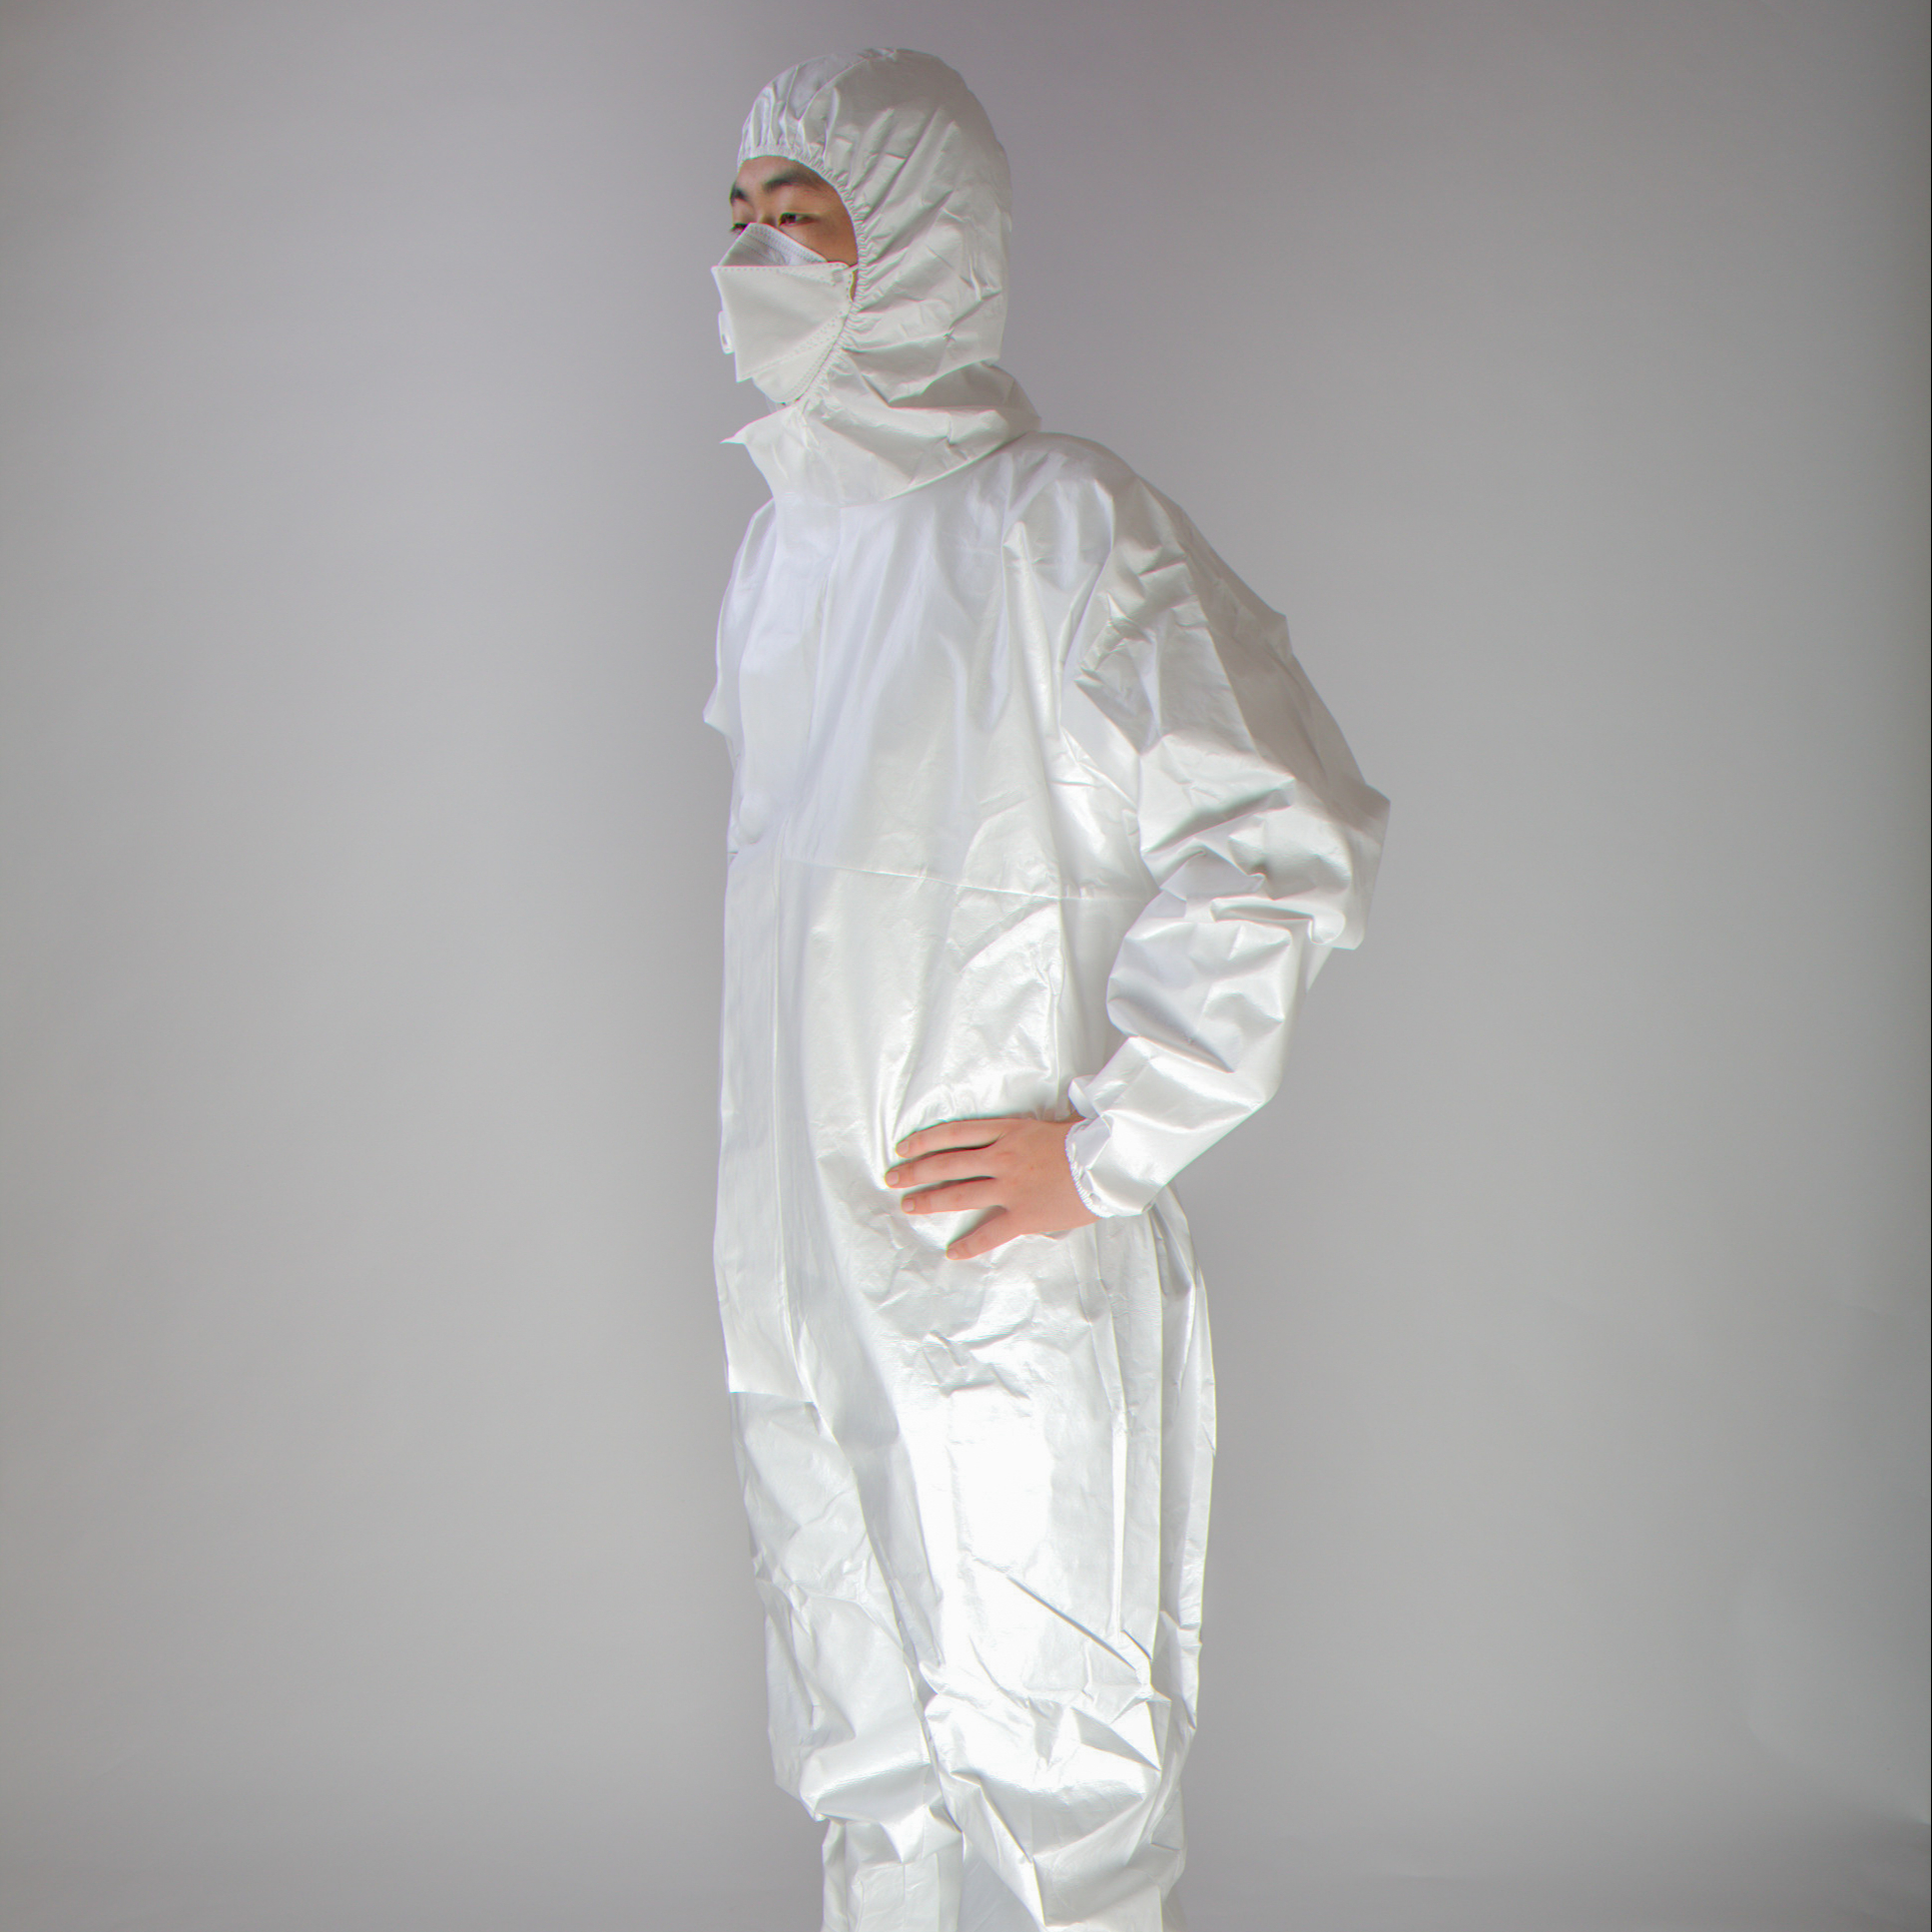 disposable non woven protective coverall disposable type 5B/6B full body cover garment men's suits with hood - KingCare | KingCare.net